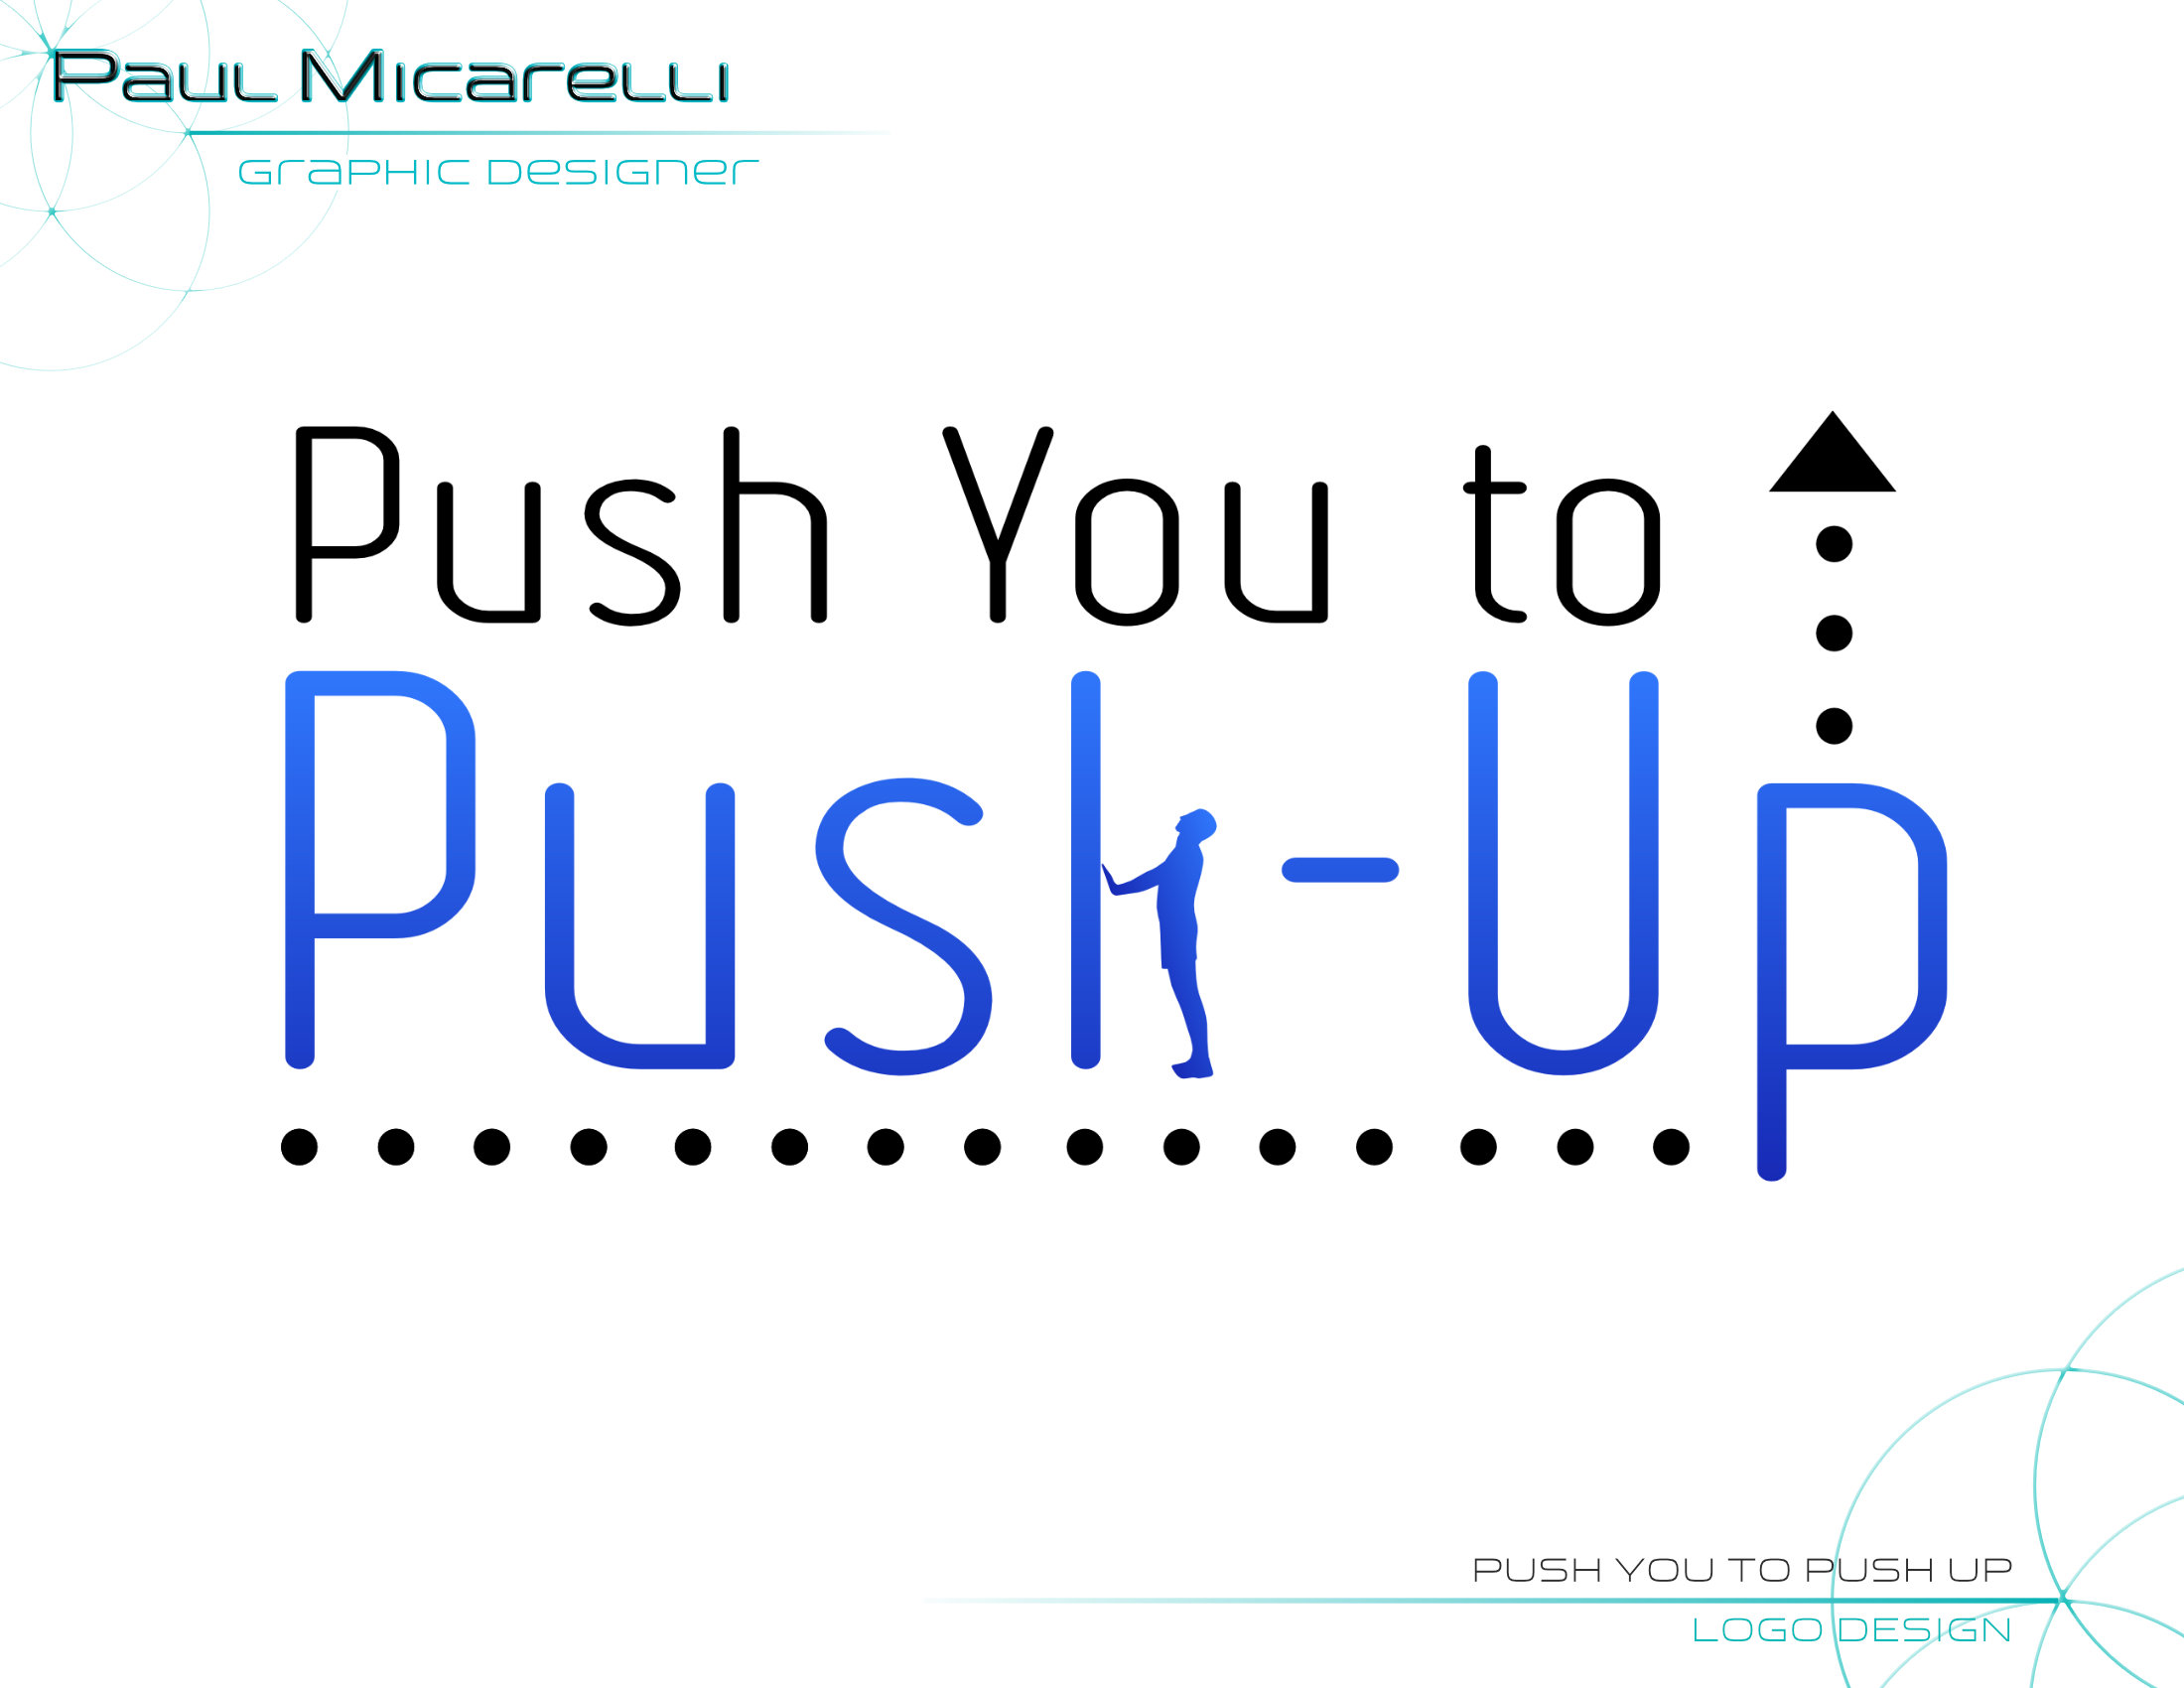 Paul-Micarelli-Push You to Push Up Logo.